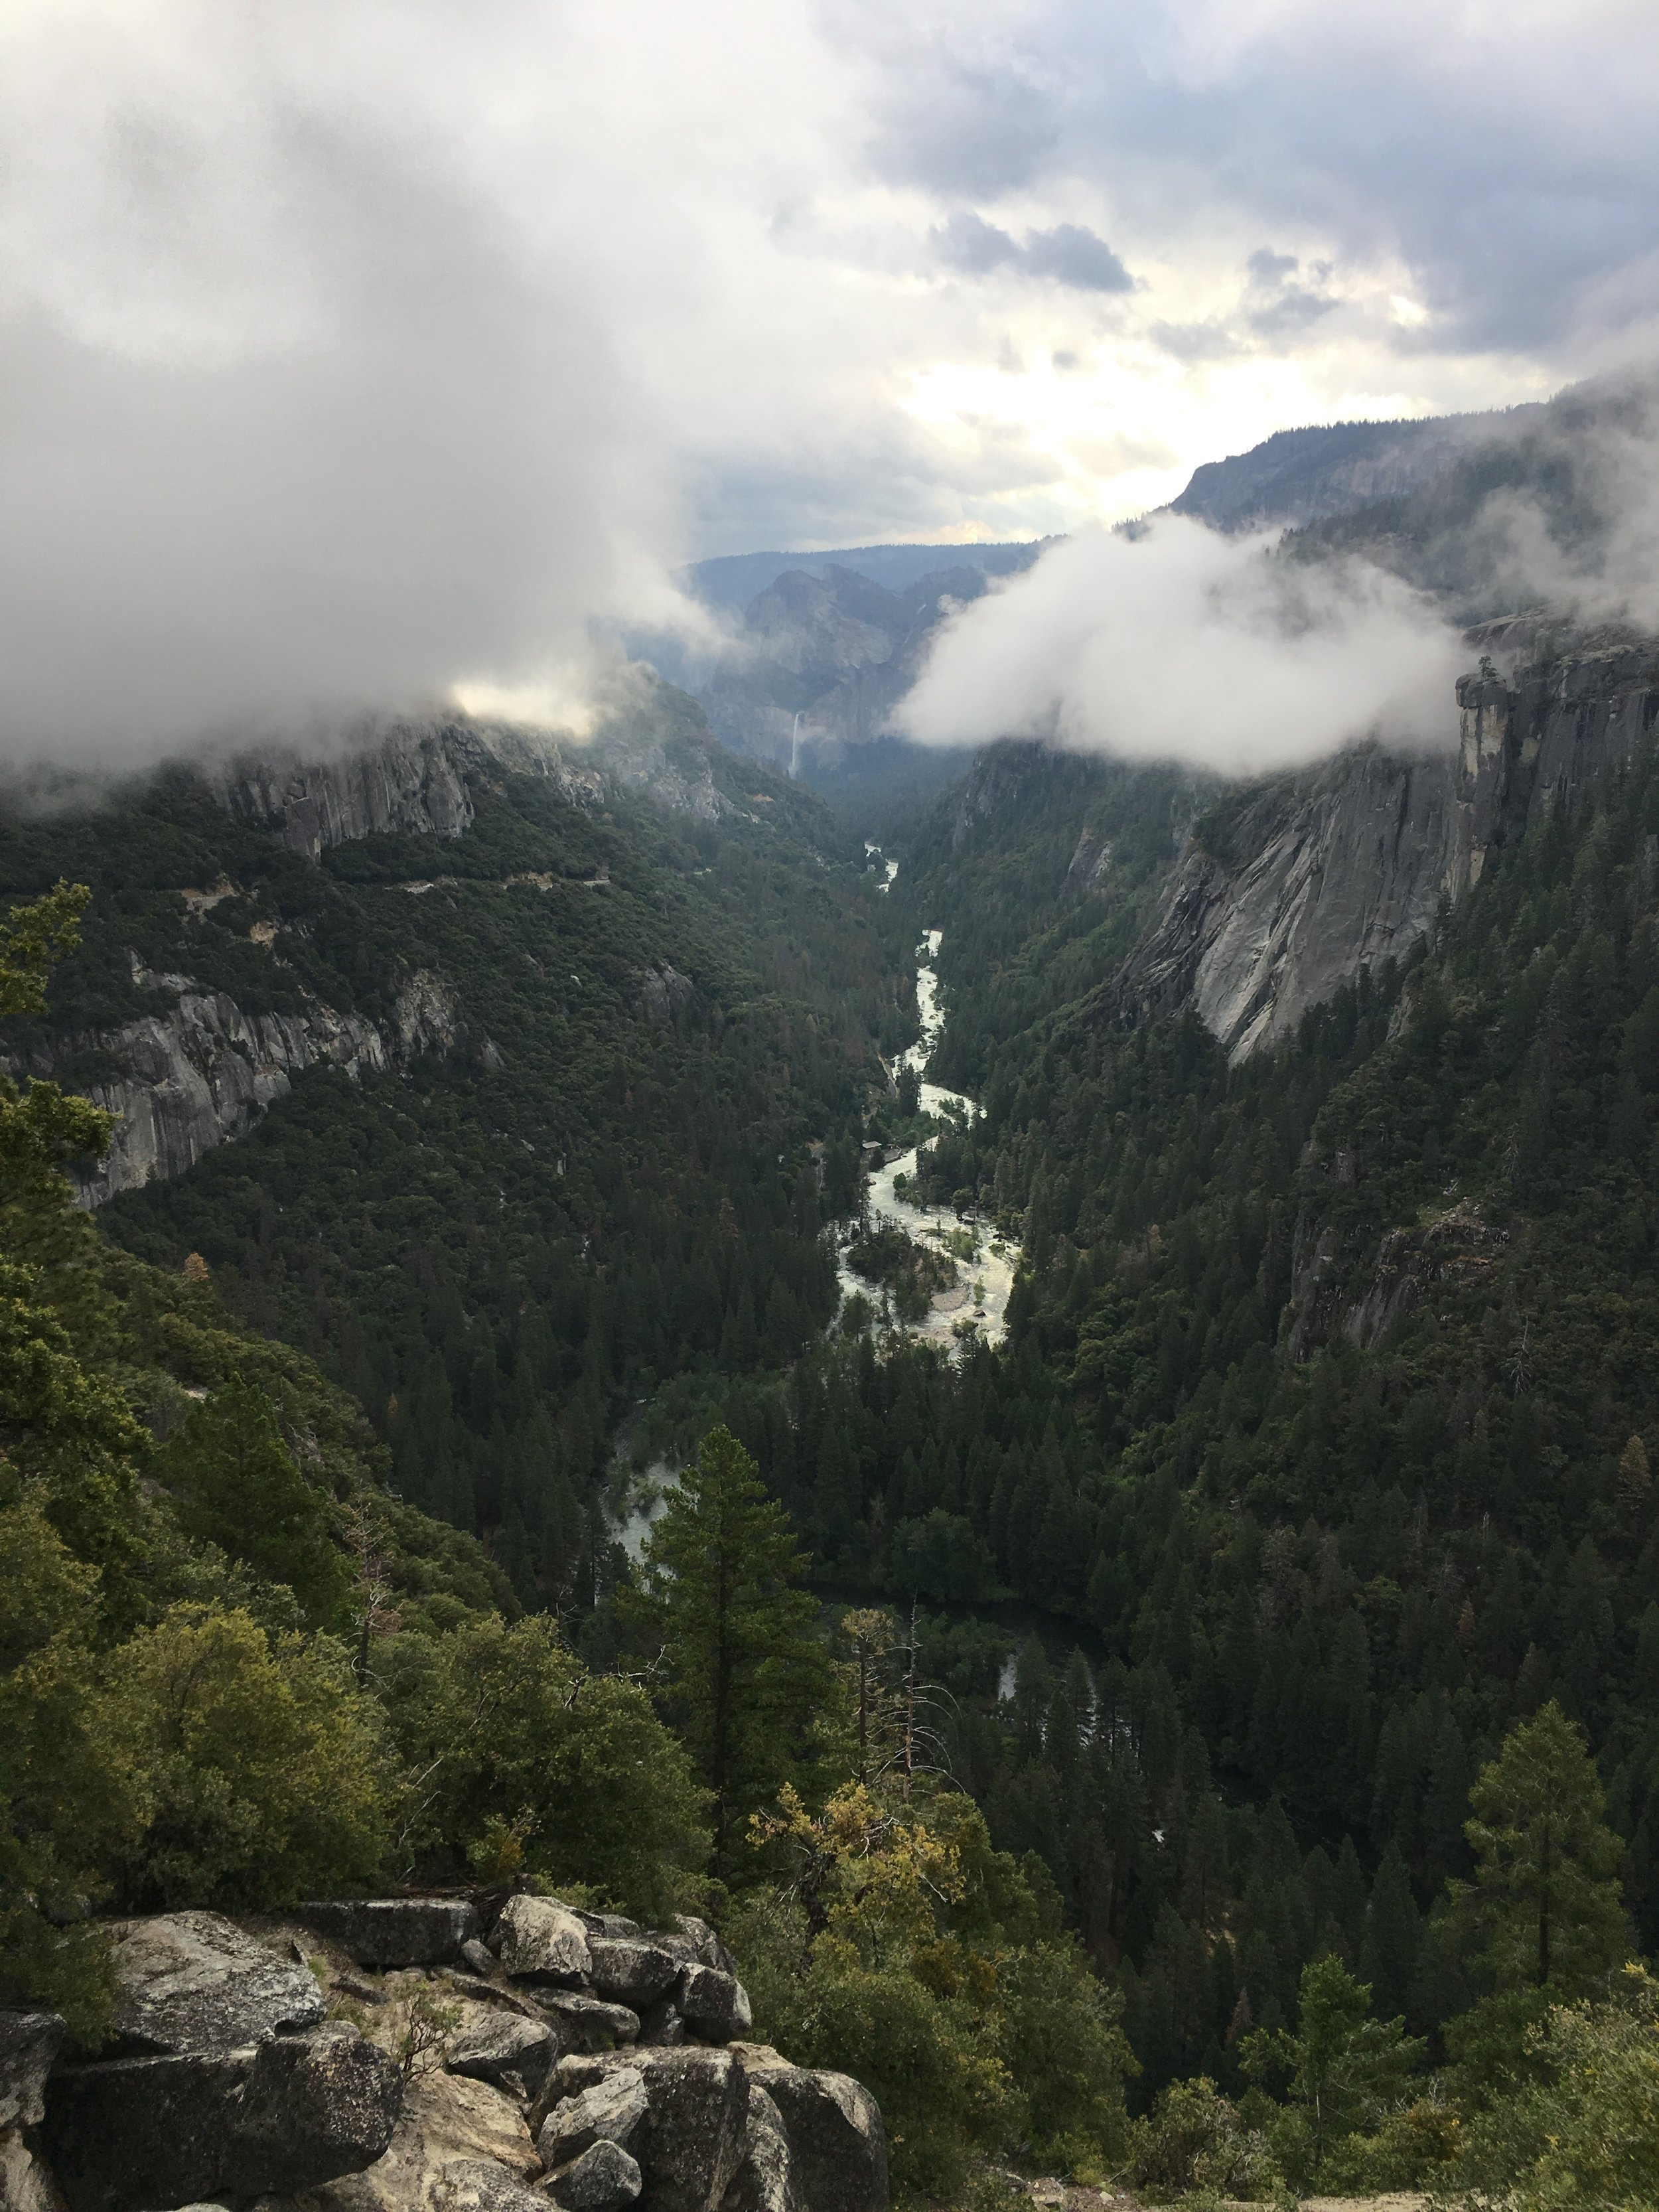 View into the Valley from Highway 120